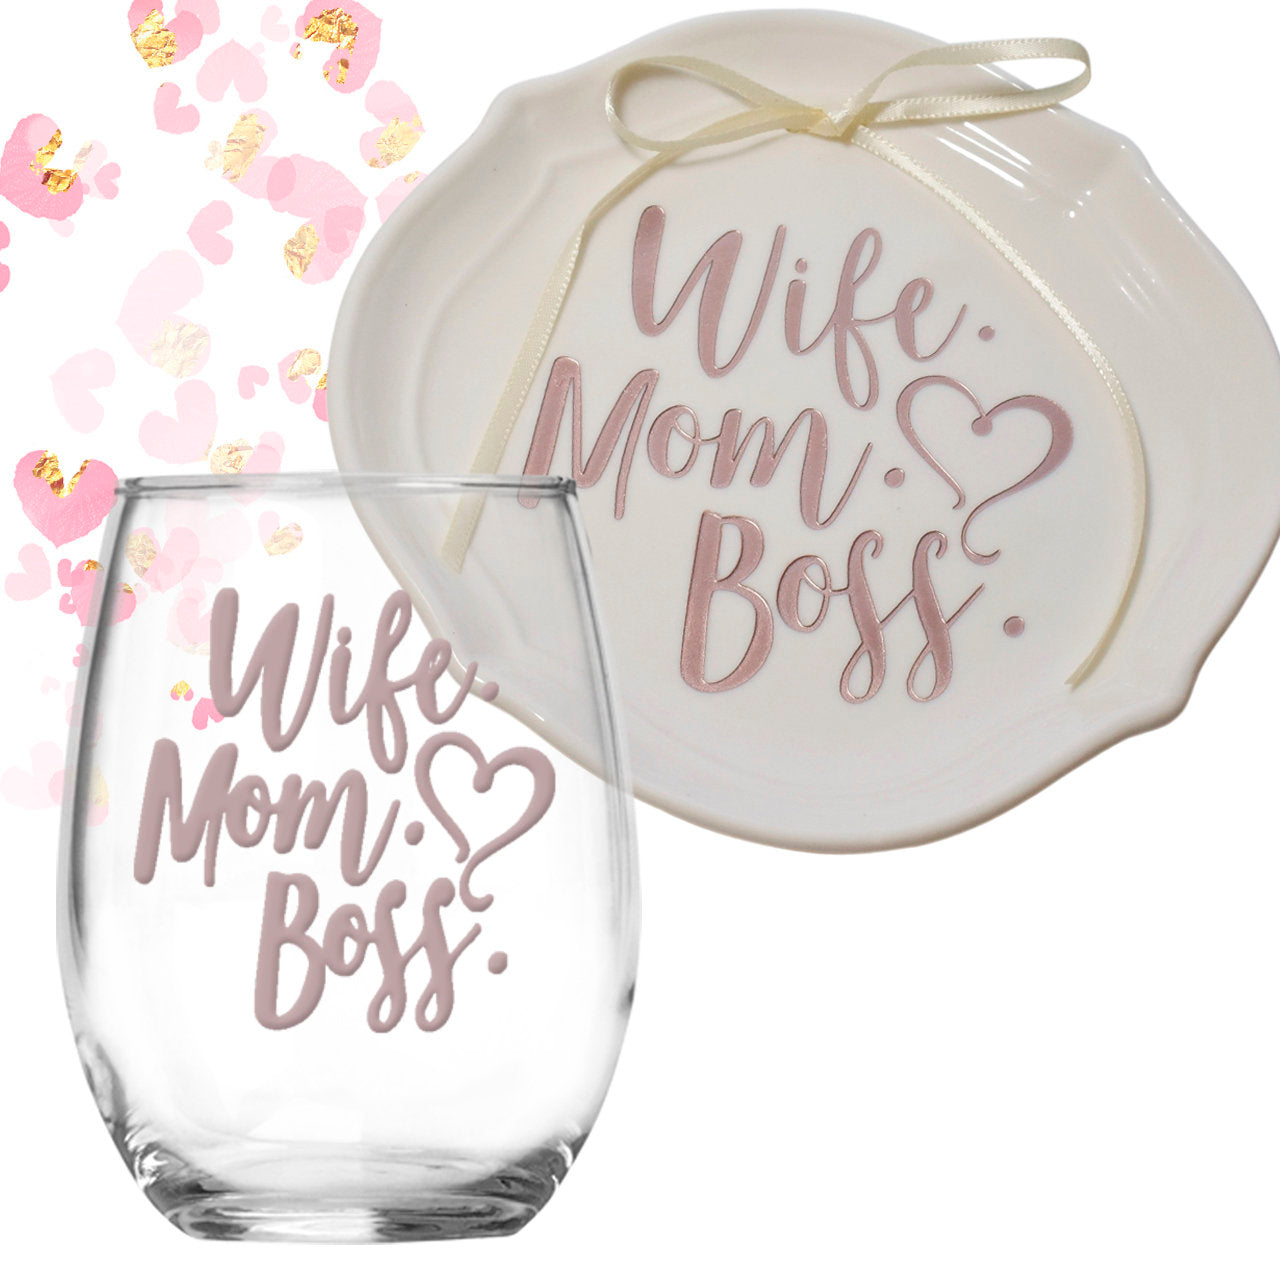 46515240bce Home   Products   Wife Mom Boss Gift Set